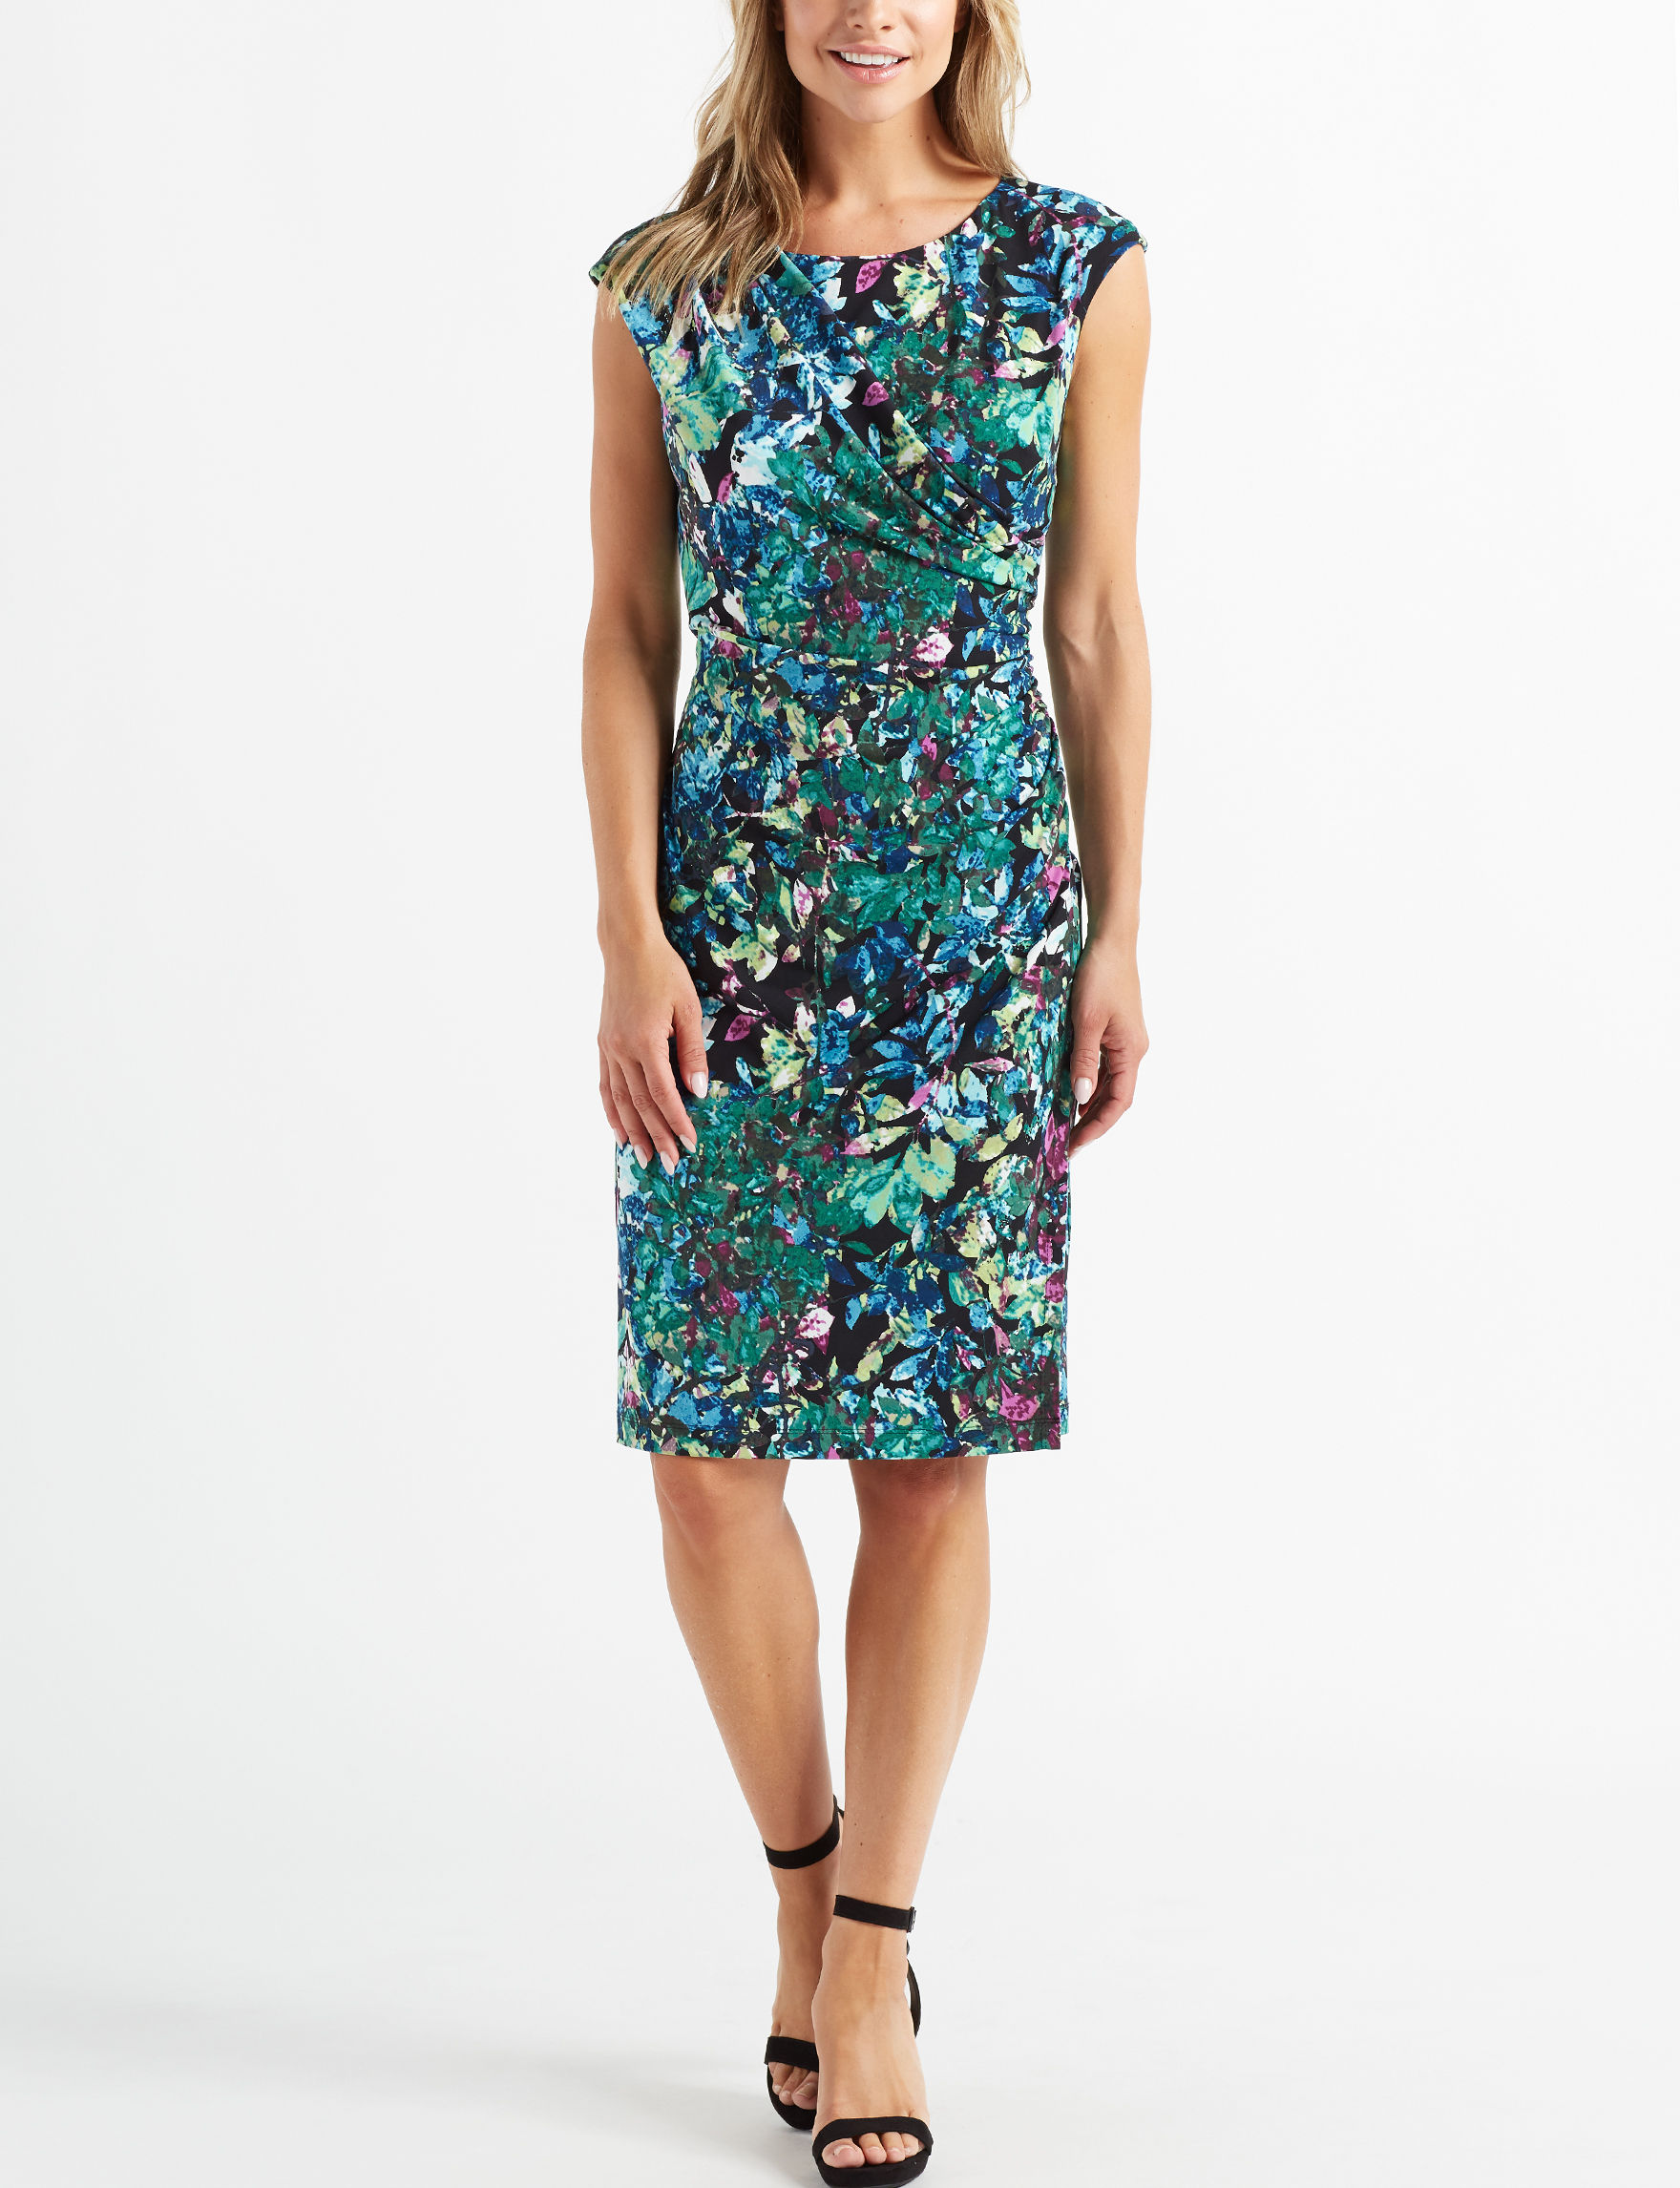 Connected Green Sheath Dresses